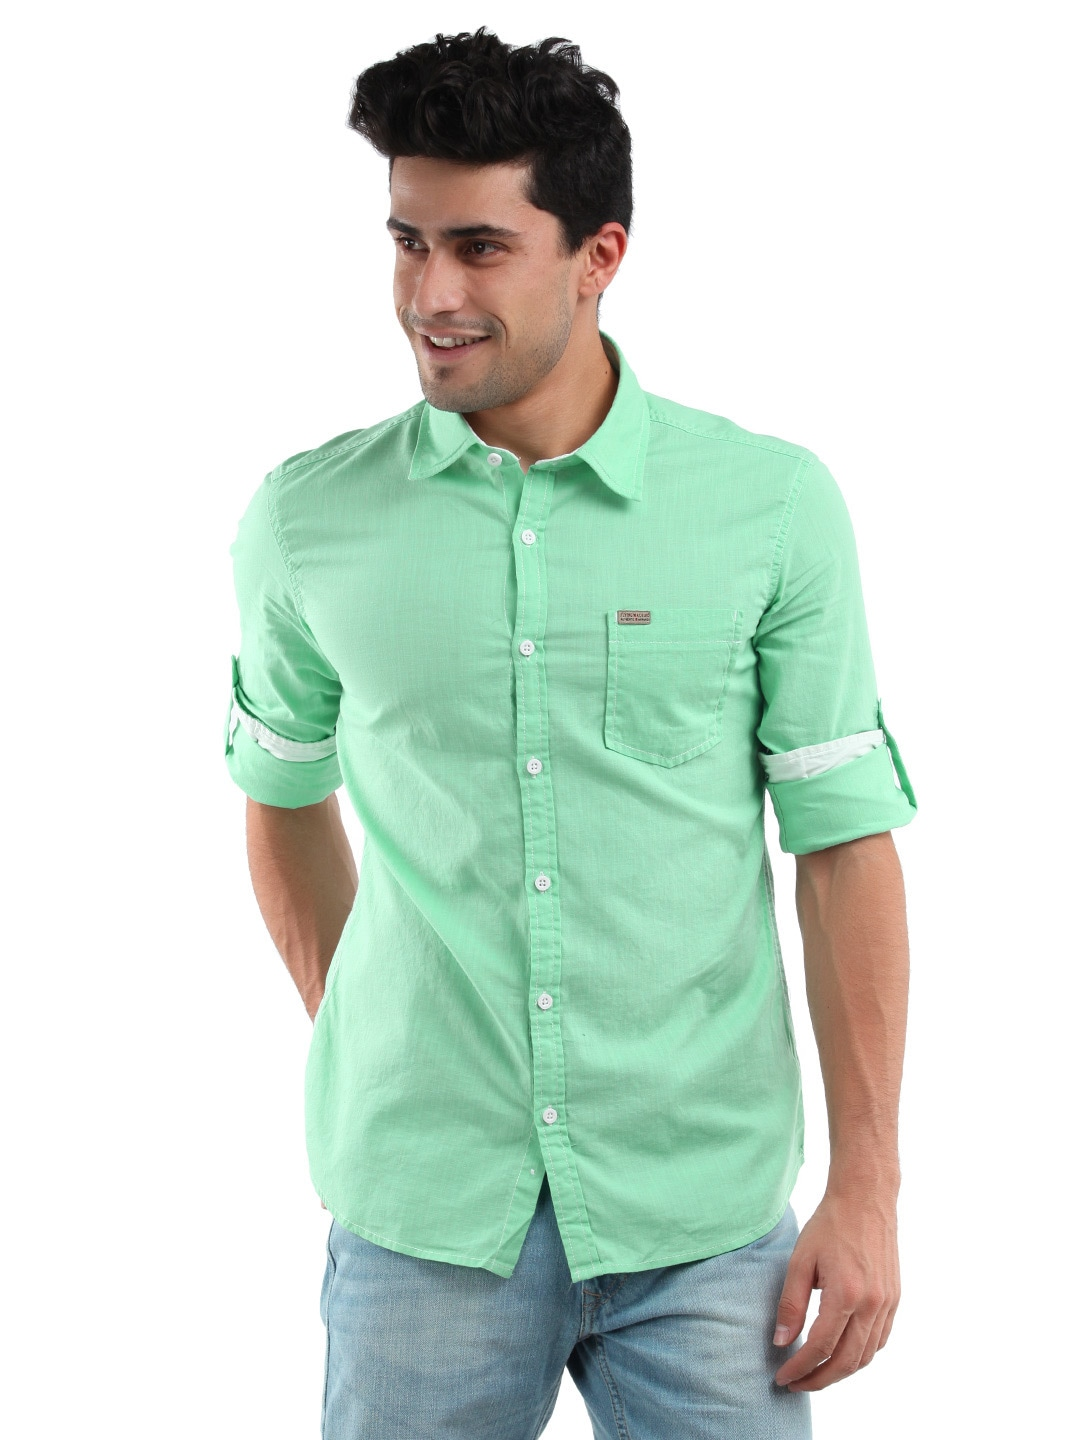 mint green shirt for men artee shirt